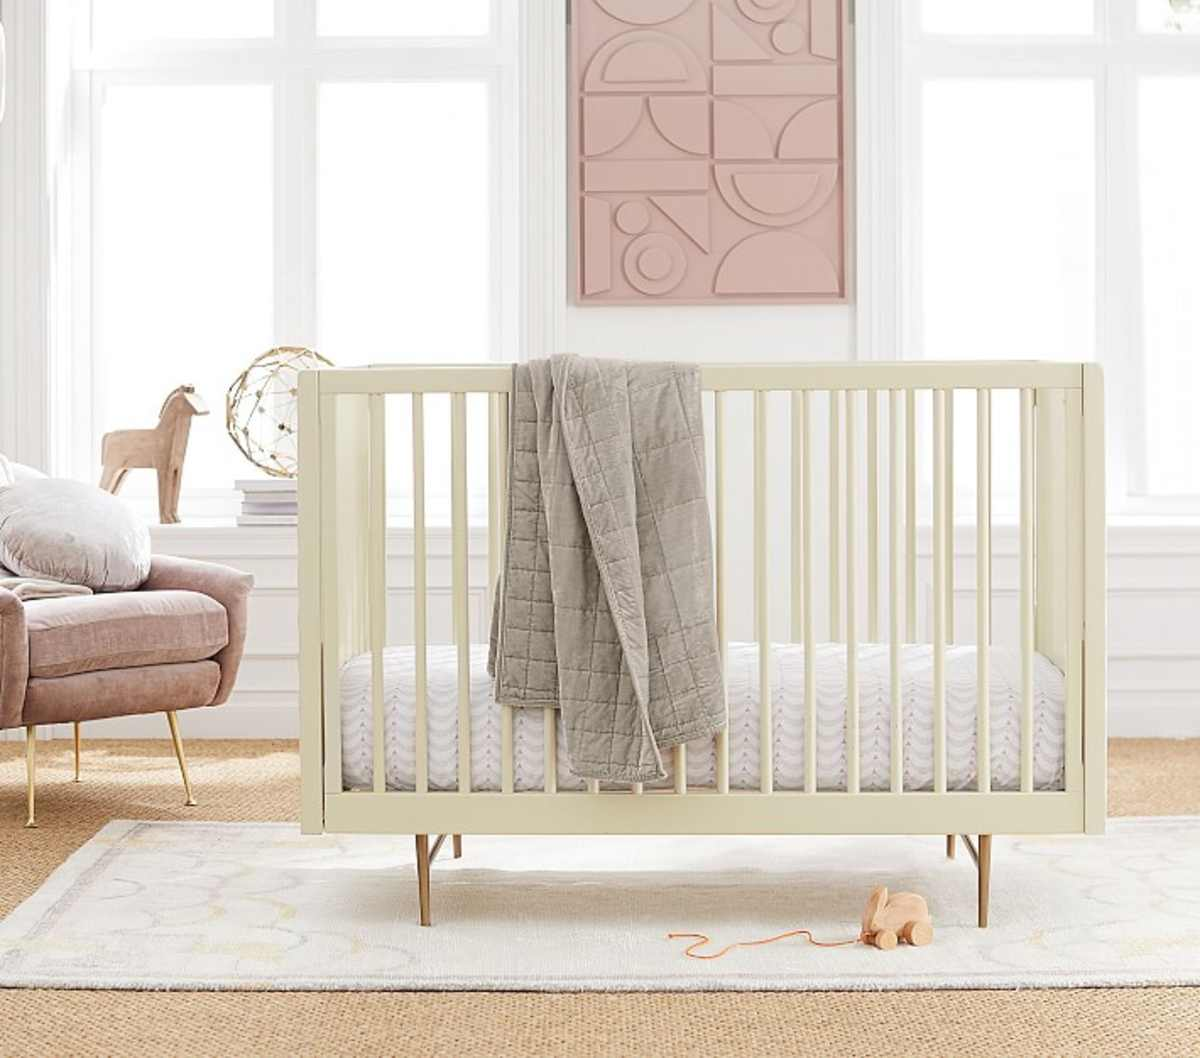 Cute Kids Bedding That Is Fair Trade Certified Lay Baby Lay